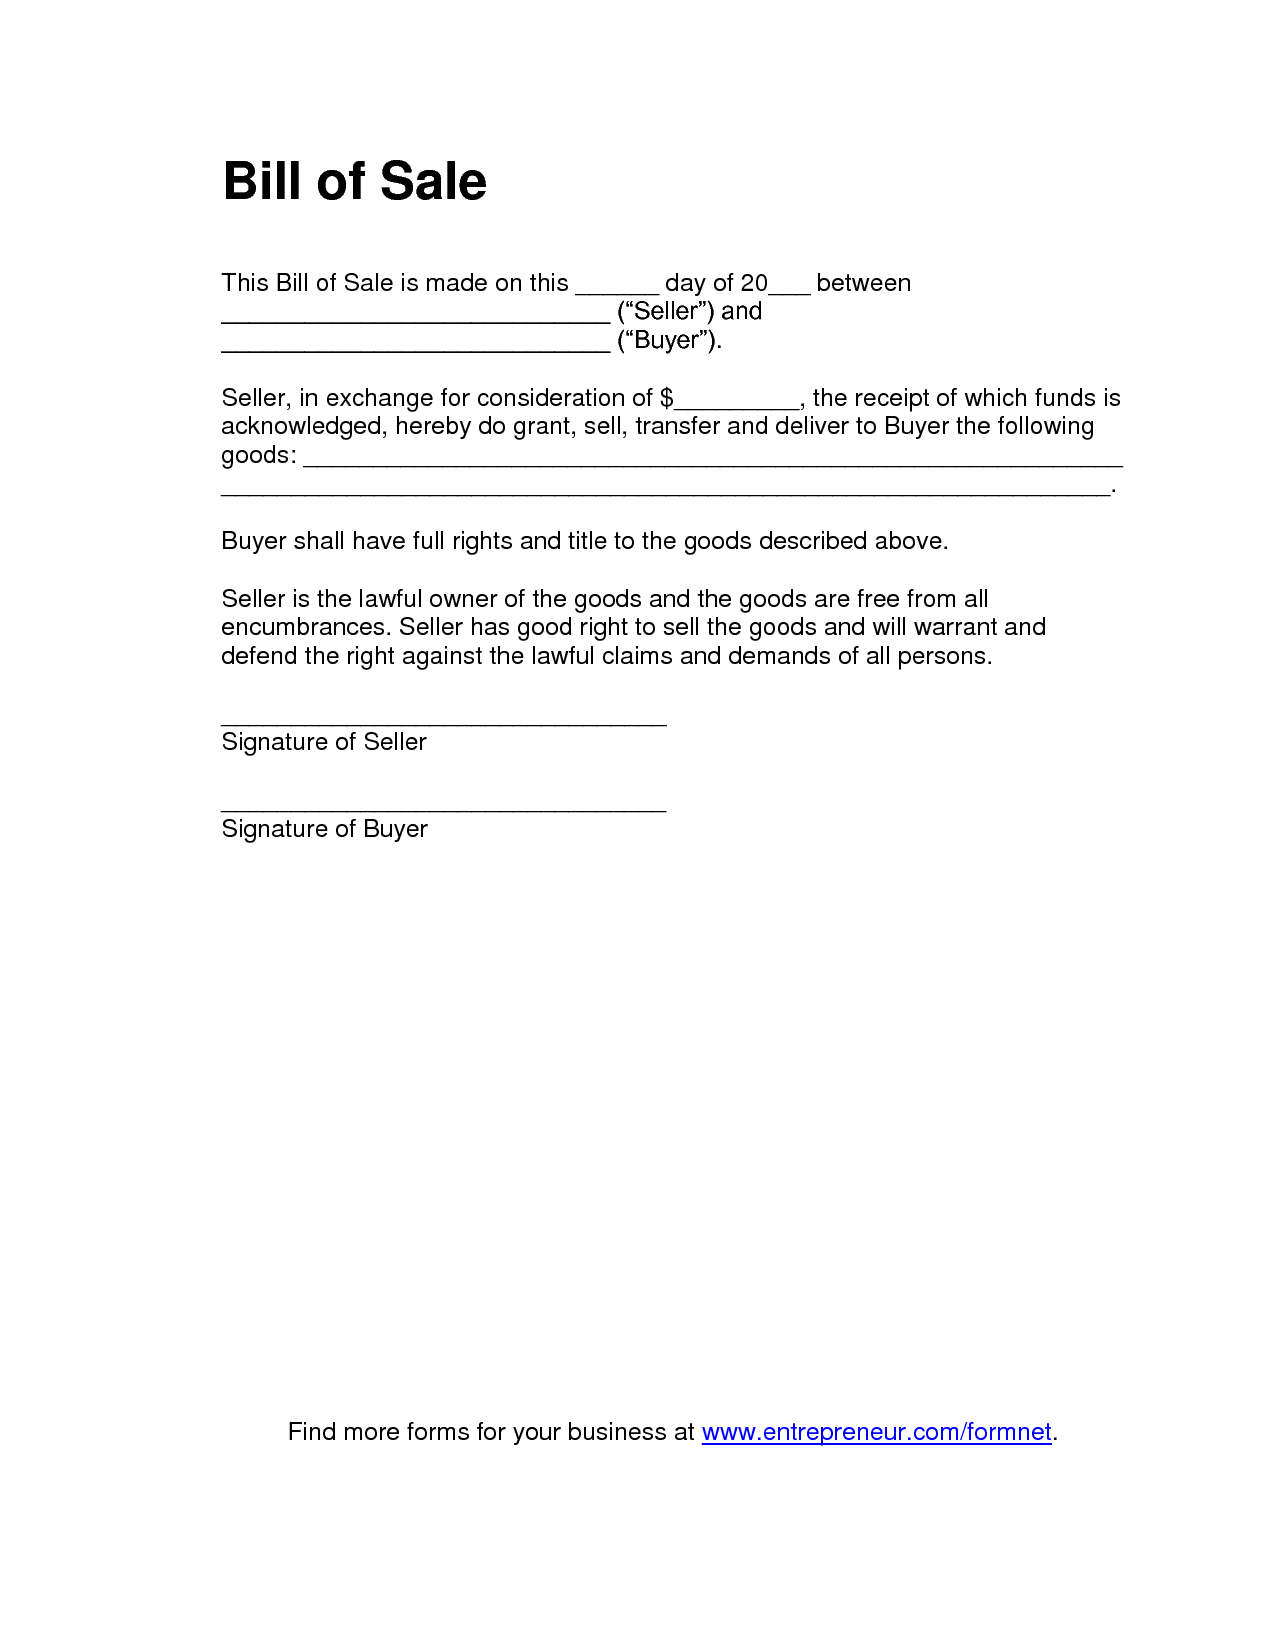 louisiana bill of sale template